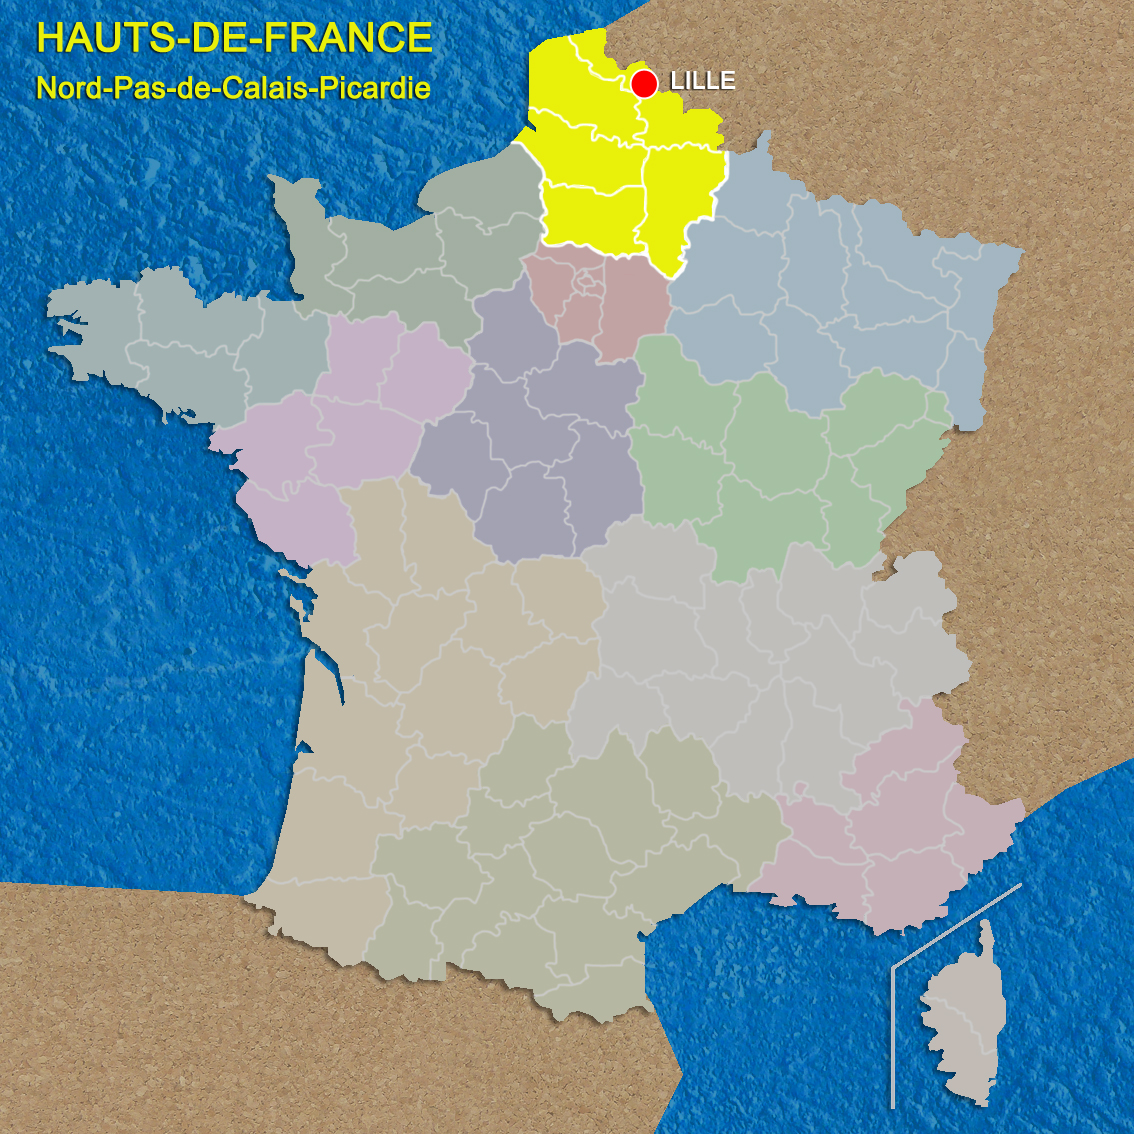 Map Of France Lille Region.A New Name For A French Region Hauts De France French Moments